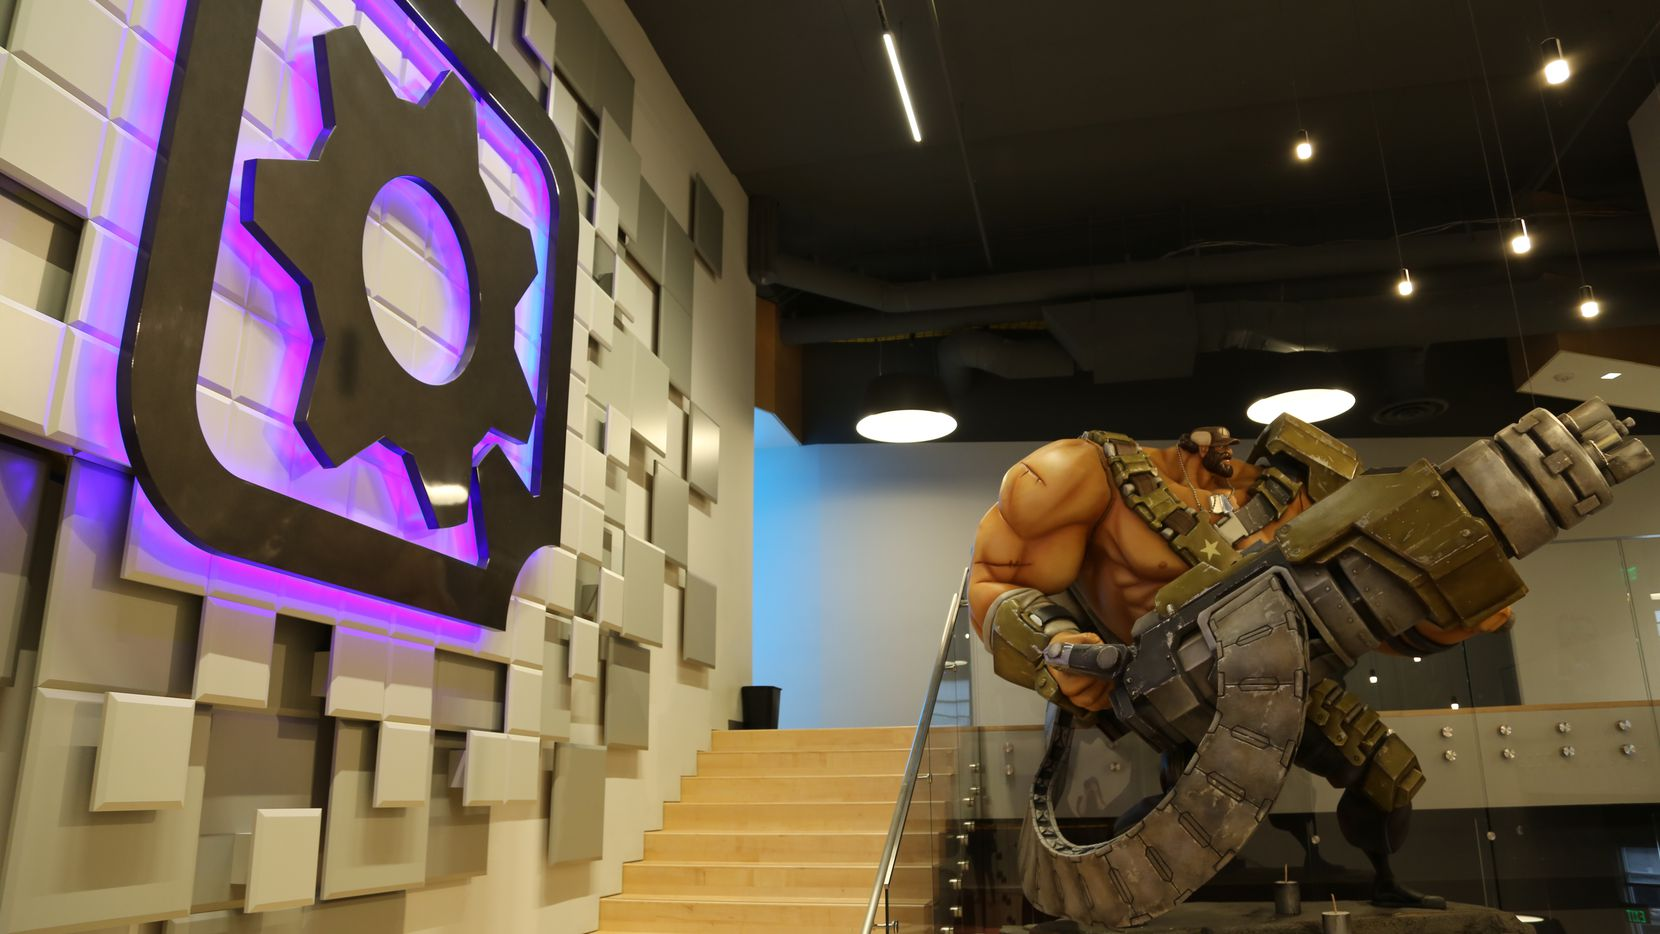 Gearbox announced a deal worth up to $1.3 billion this week to become a wholly-owned subsidiary of Swedish-based Embracer Group.